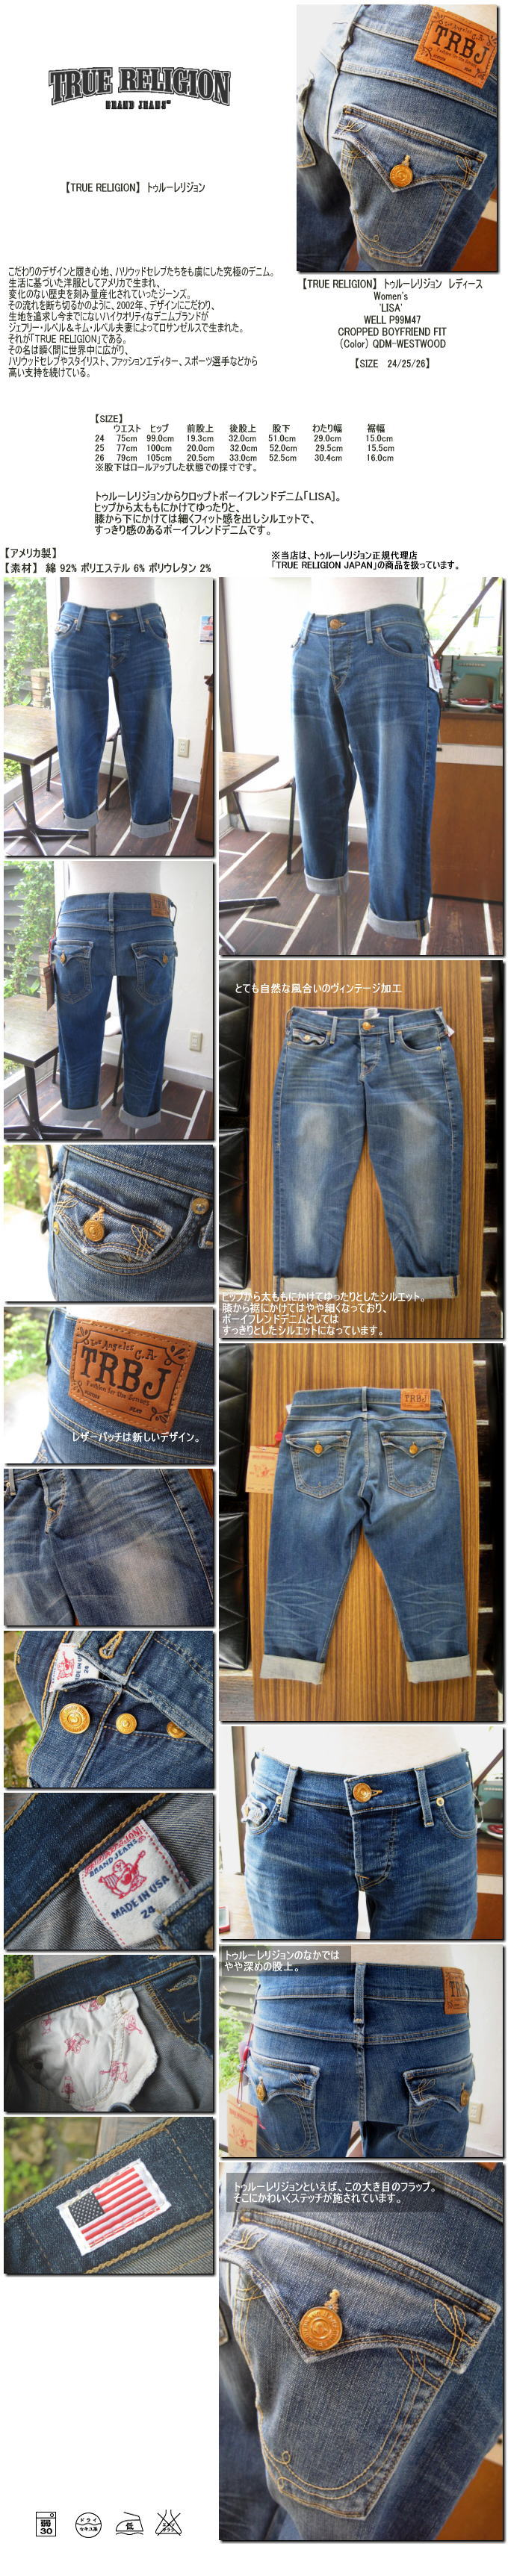 【TRUE RELIGION】トゥルーレリジョン レディース Women's ボーイフレンドデニム 'LISA' WELL P99M47  CROPPED BOYFRIEND FIT  Color QDM-WESTWOOD